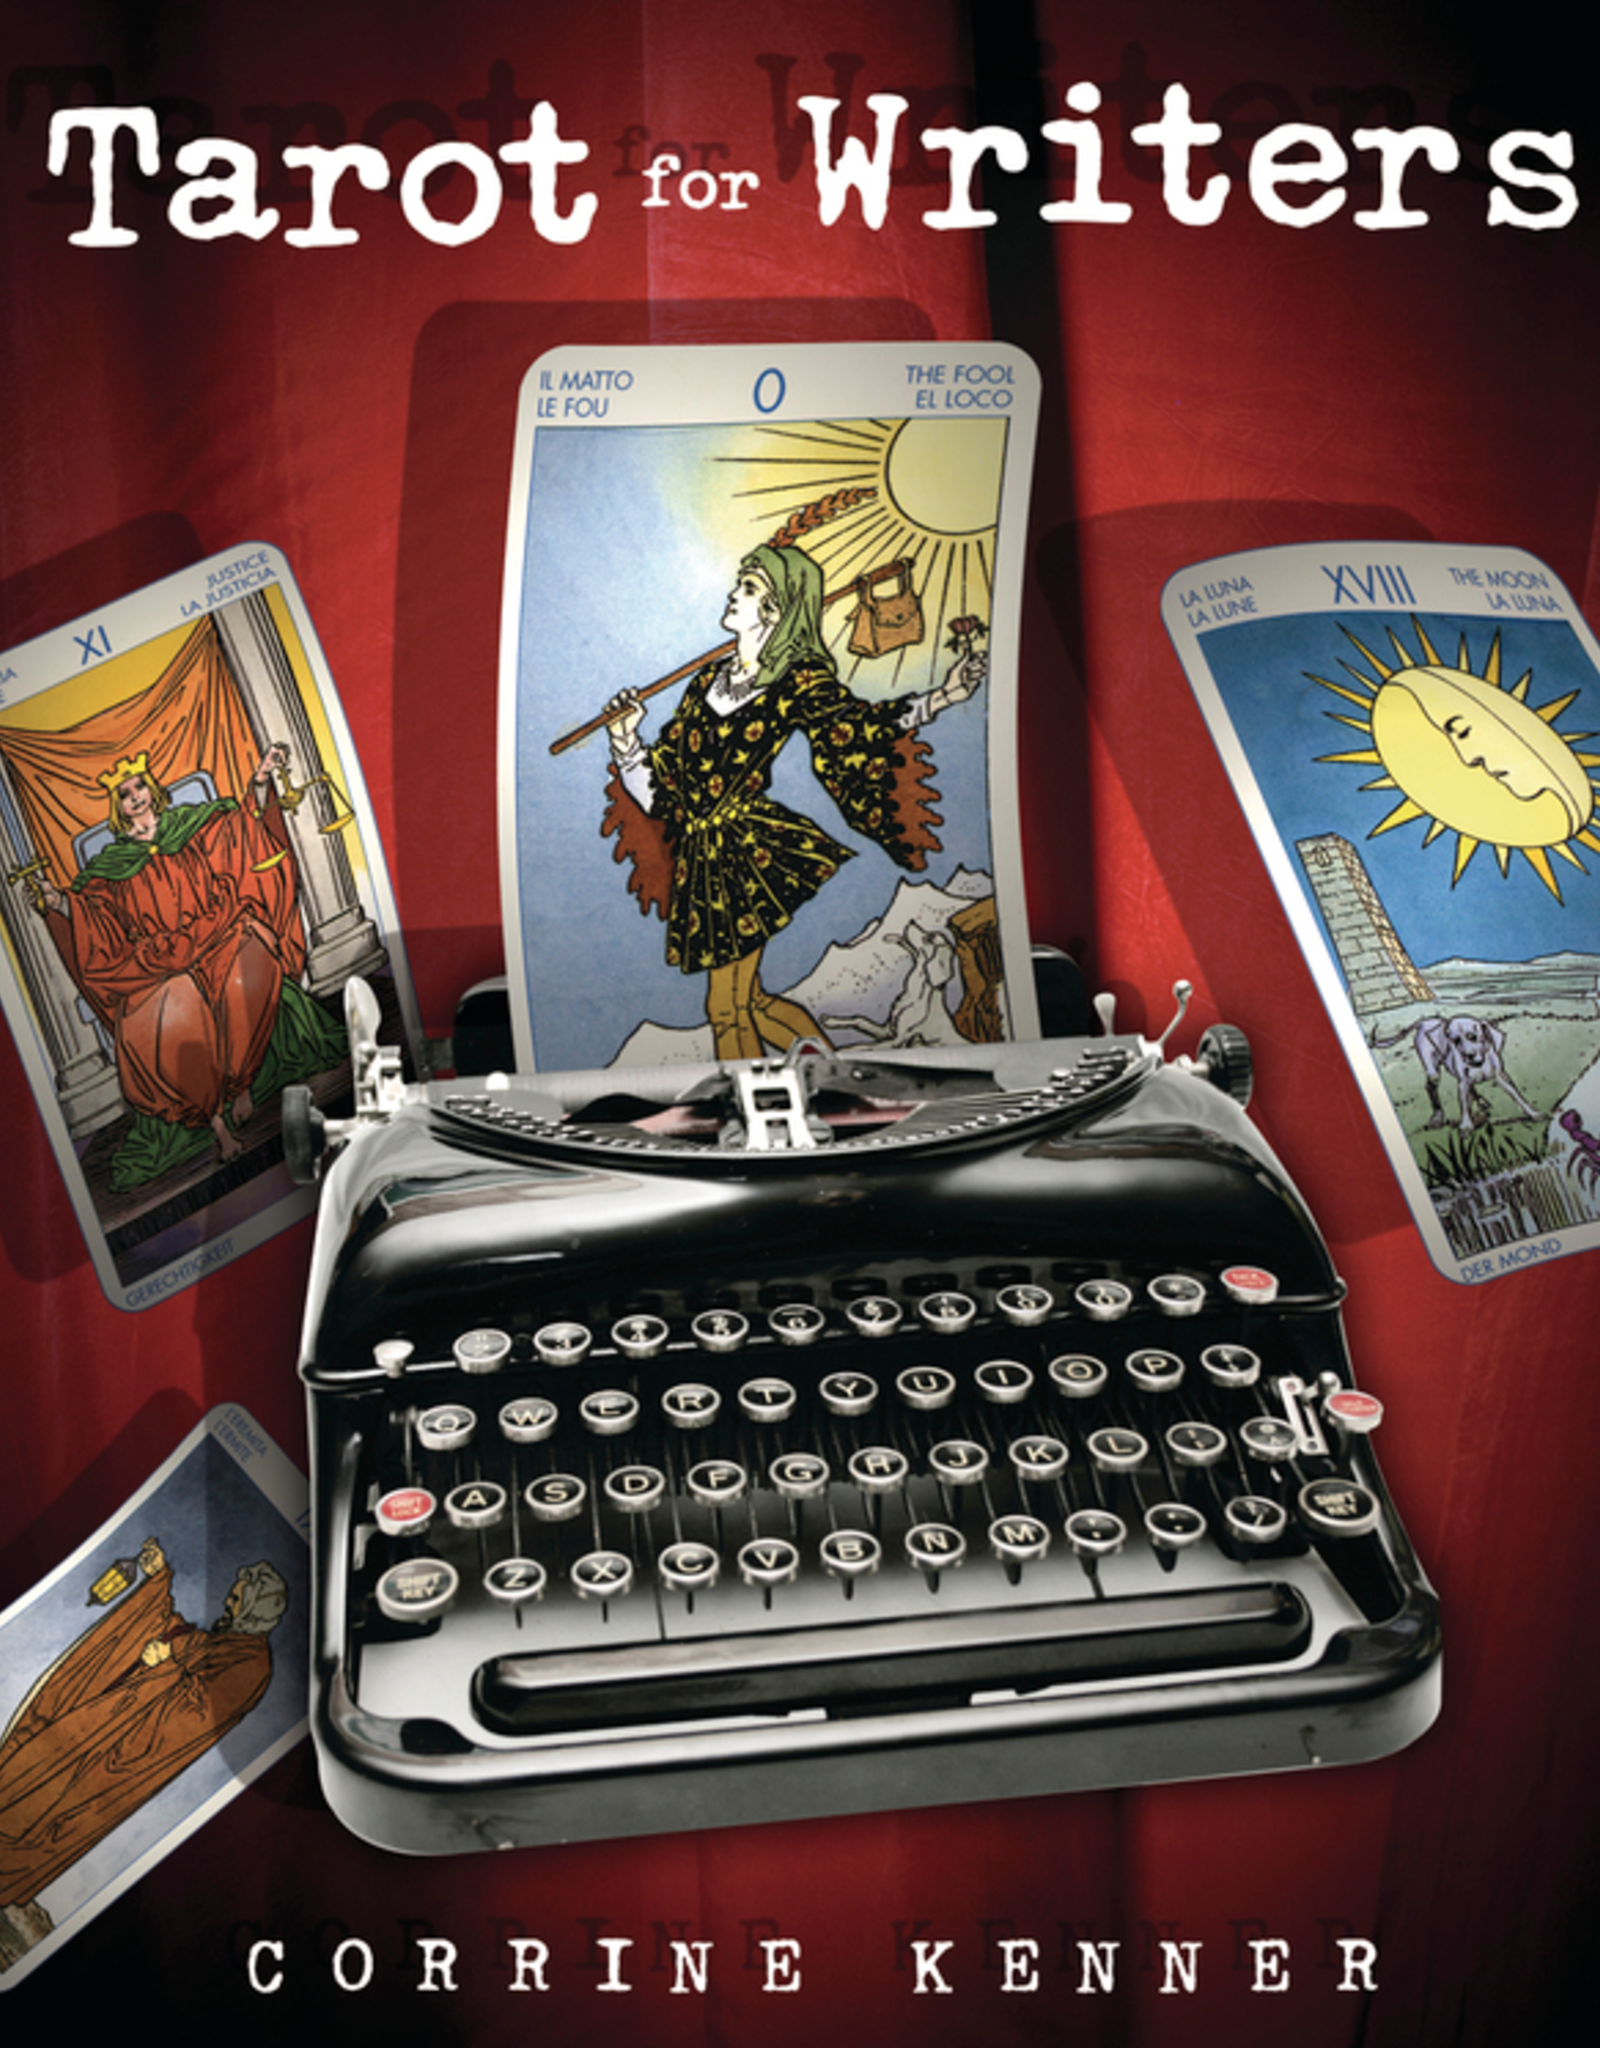 Llewelyn Tarot for Writers